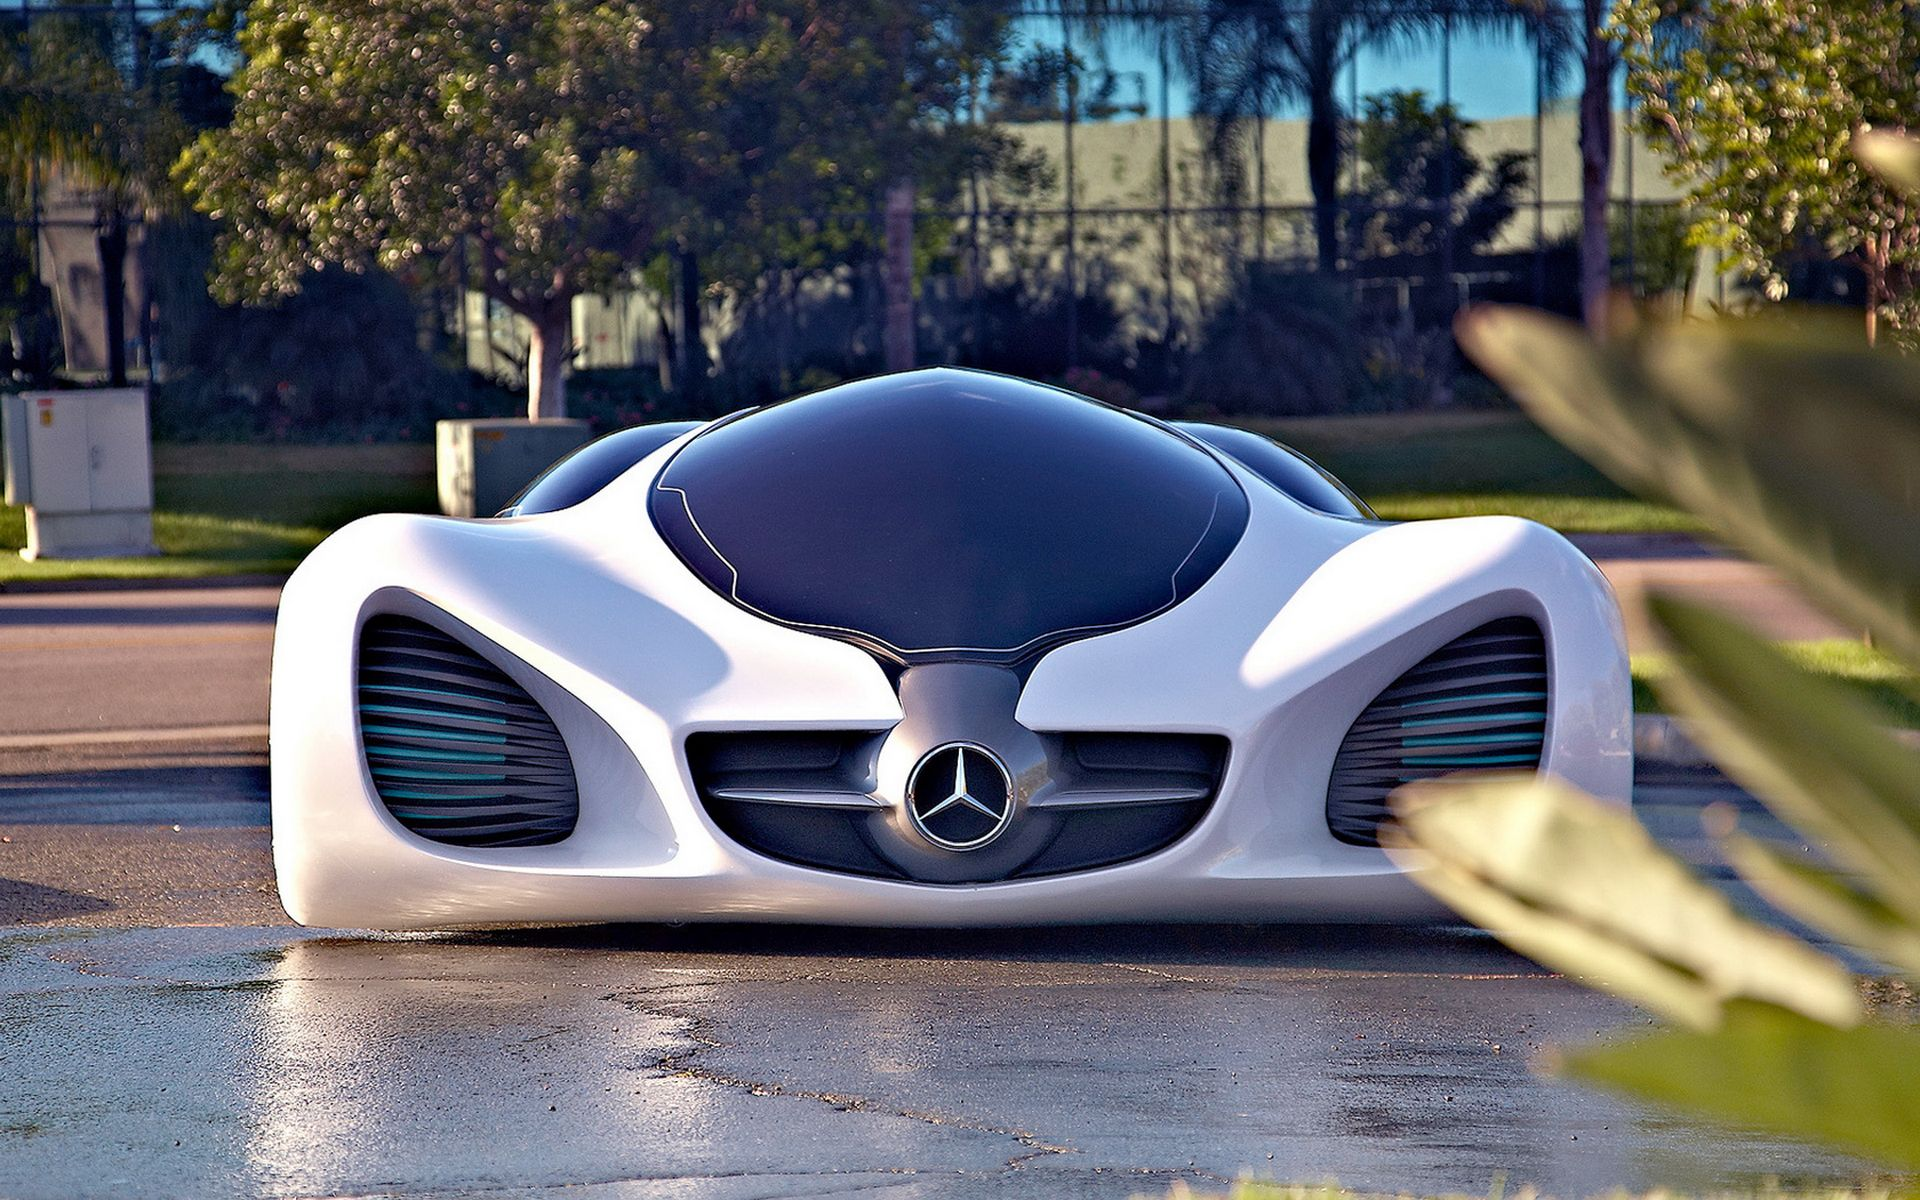 Mercedes Benz Biome Concept Car Do You Like This Cool Have A Look At Much More Incredible Cars Www Cliquelimo Rides